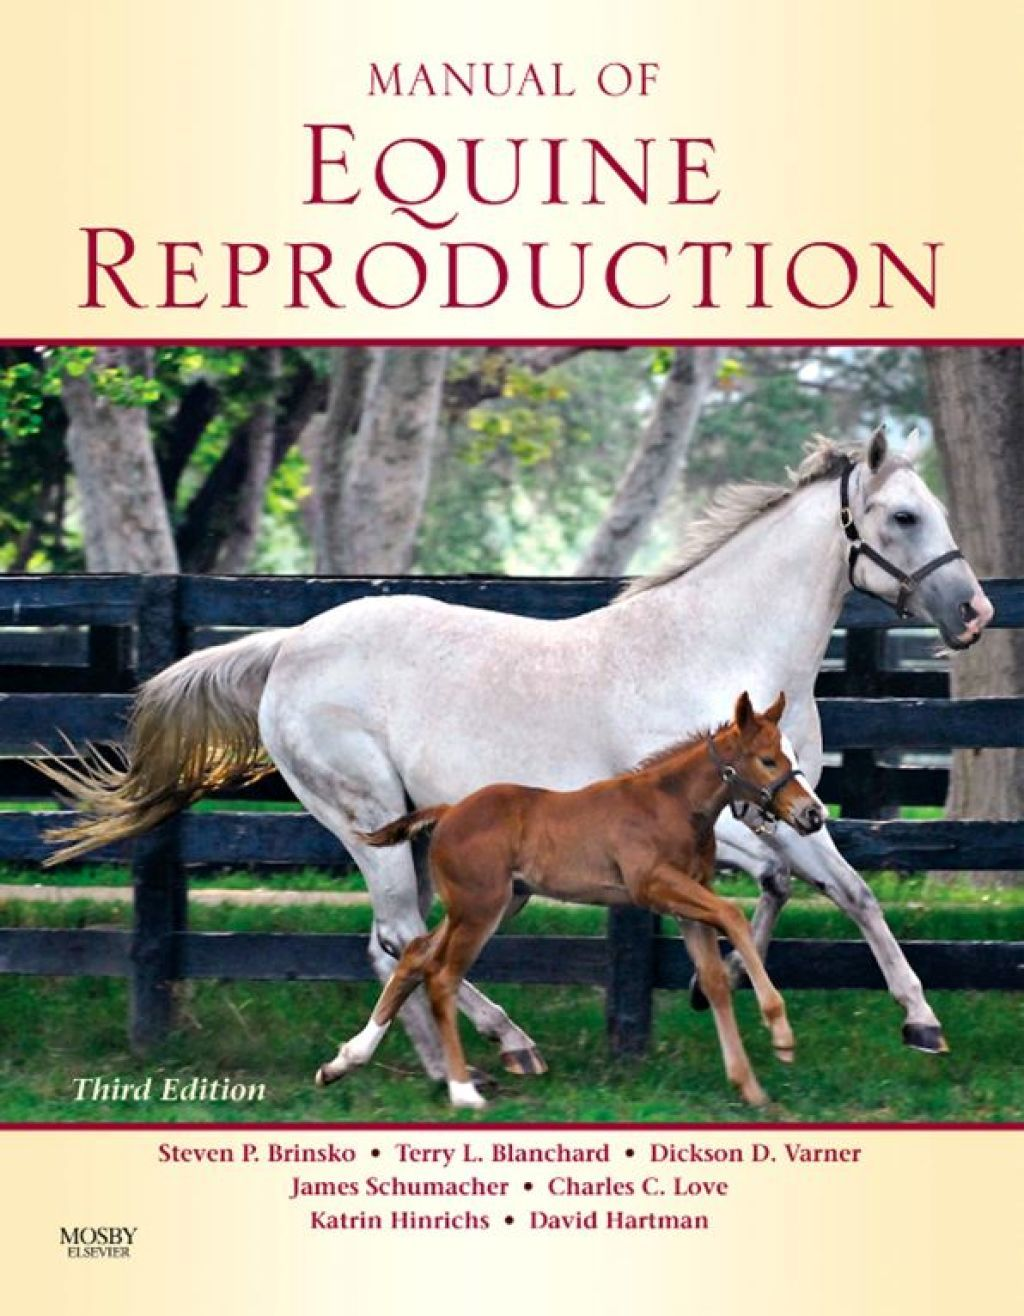 Manual Of Equine Reproduction Ebook Rental In 2020 Equines Veterinary Horse Anatomy